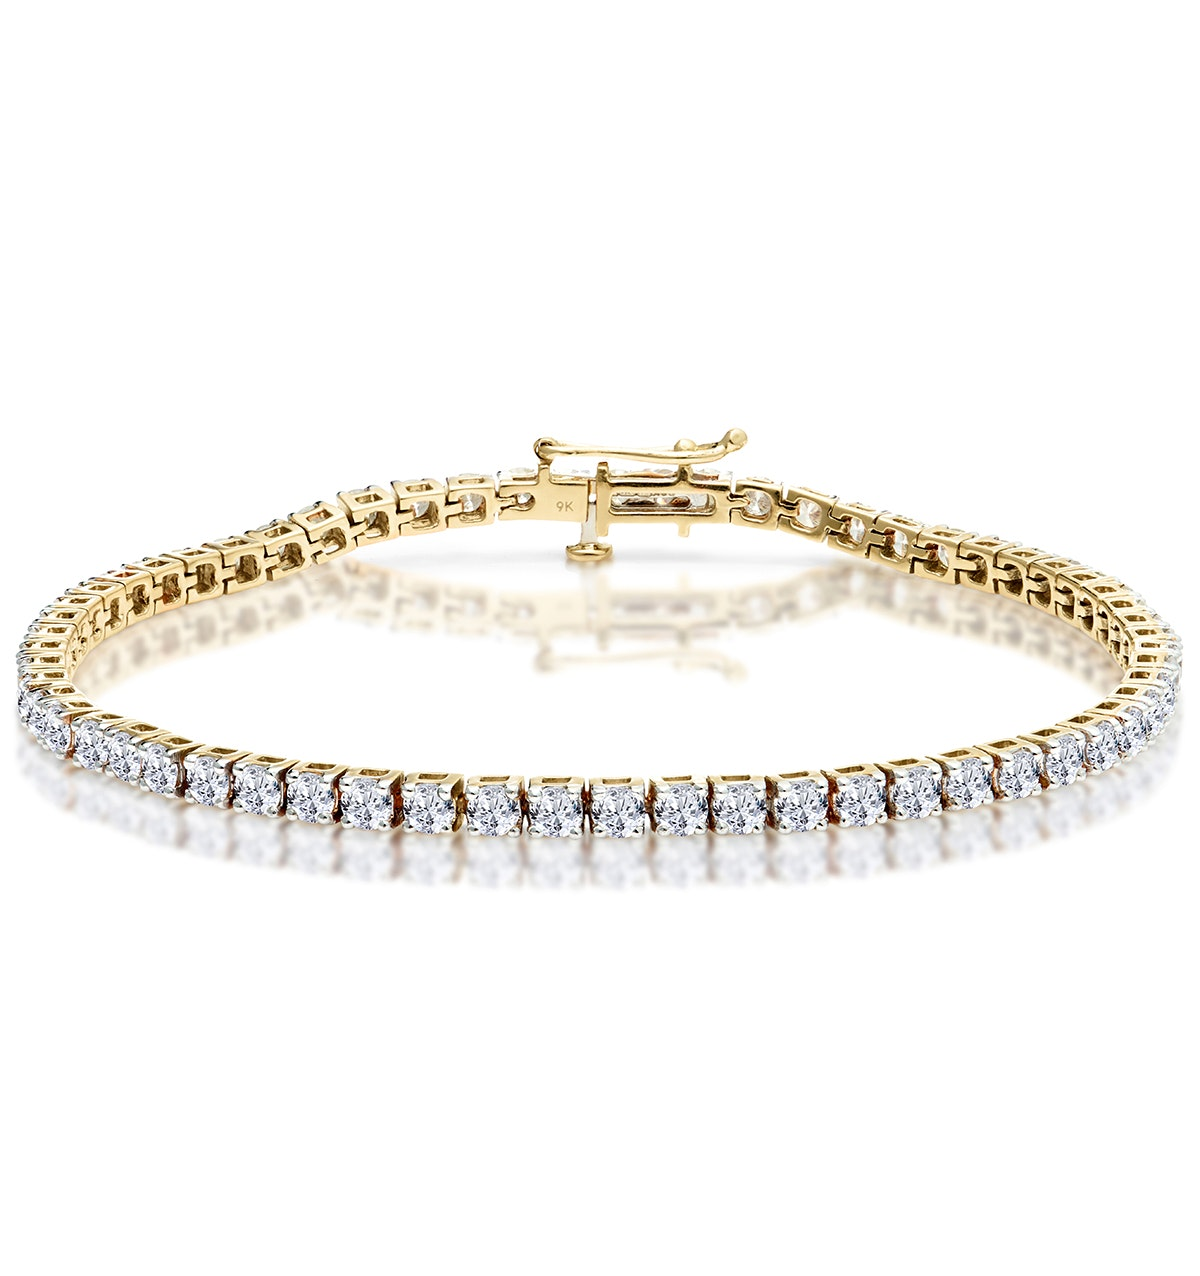 5ct Diamond Tennis Bracelet Claw Set in 9K Yellow Gold